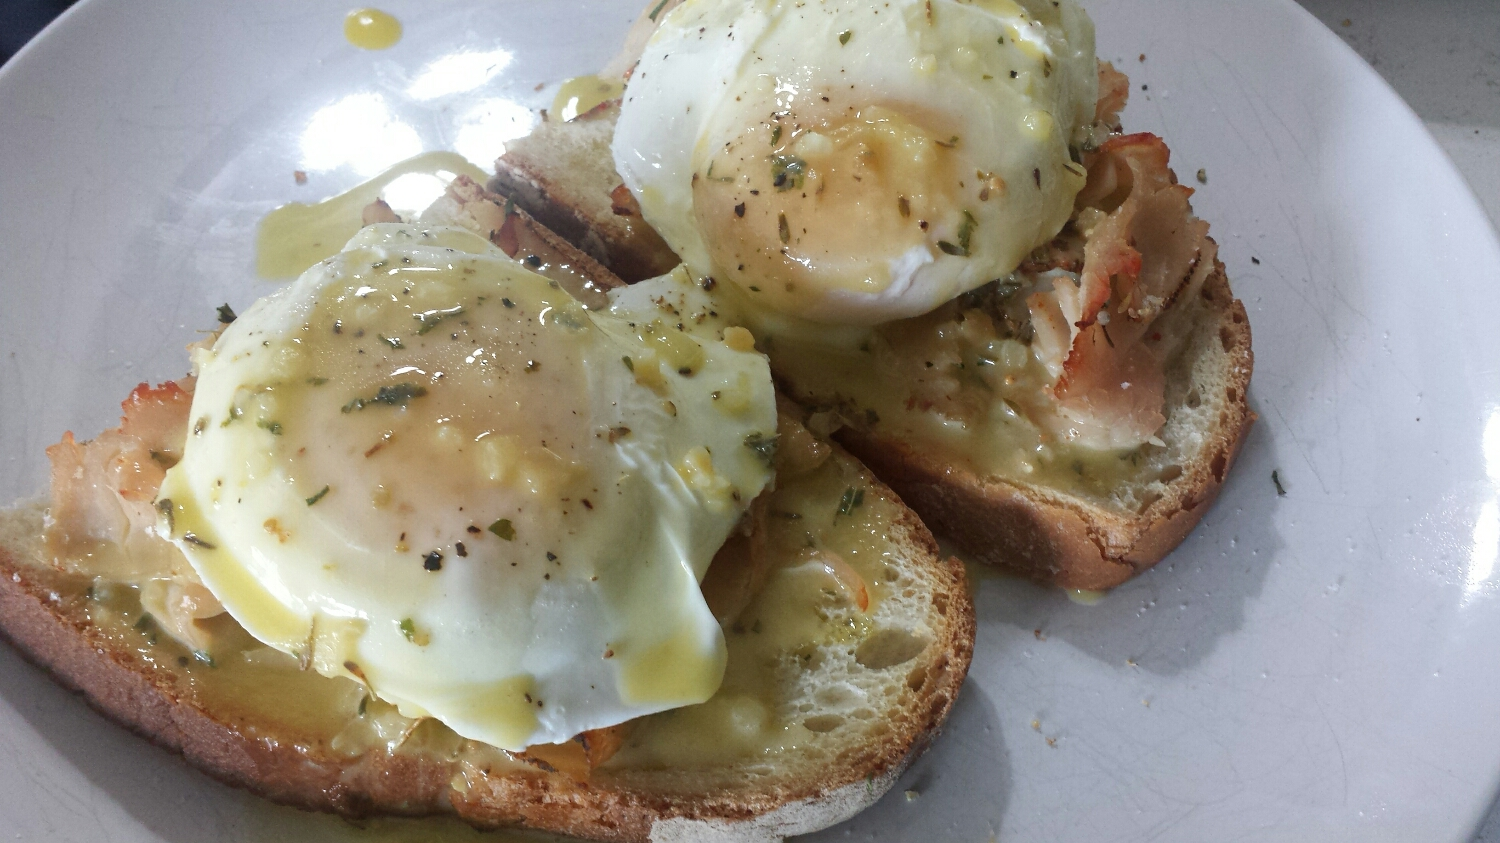 Remove the bread from the oven and place on a plate. Gently scoop the eggs from the saute pan and place on top of the bread/meat. Top the dish with hollandaise and, voila! Brunch is ready!